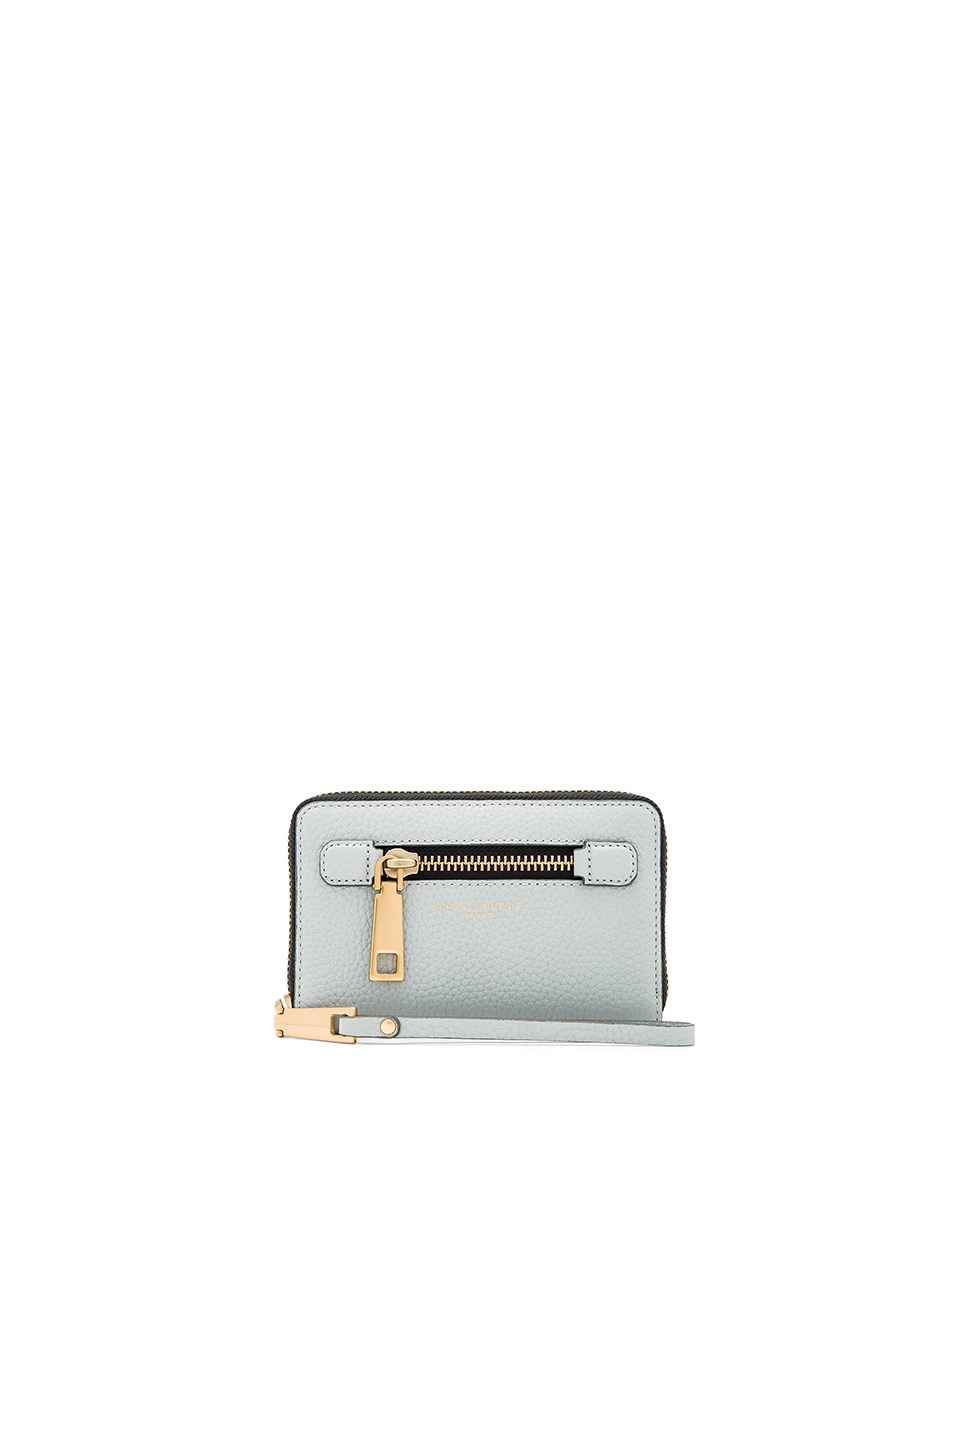 Marc Jacobs Gotham Zip Phone Wristlet in Frost